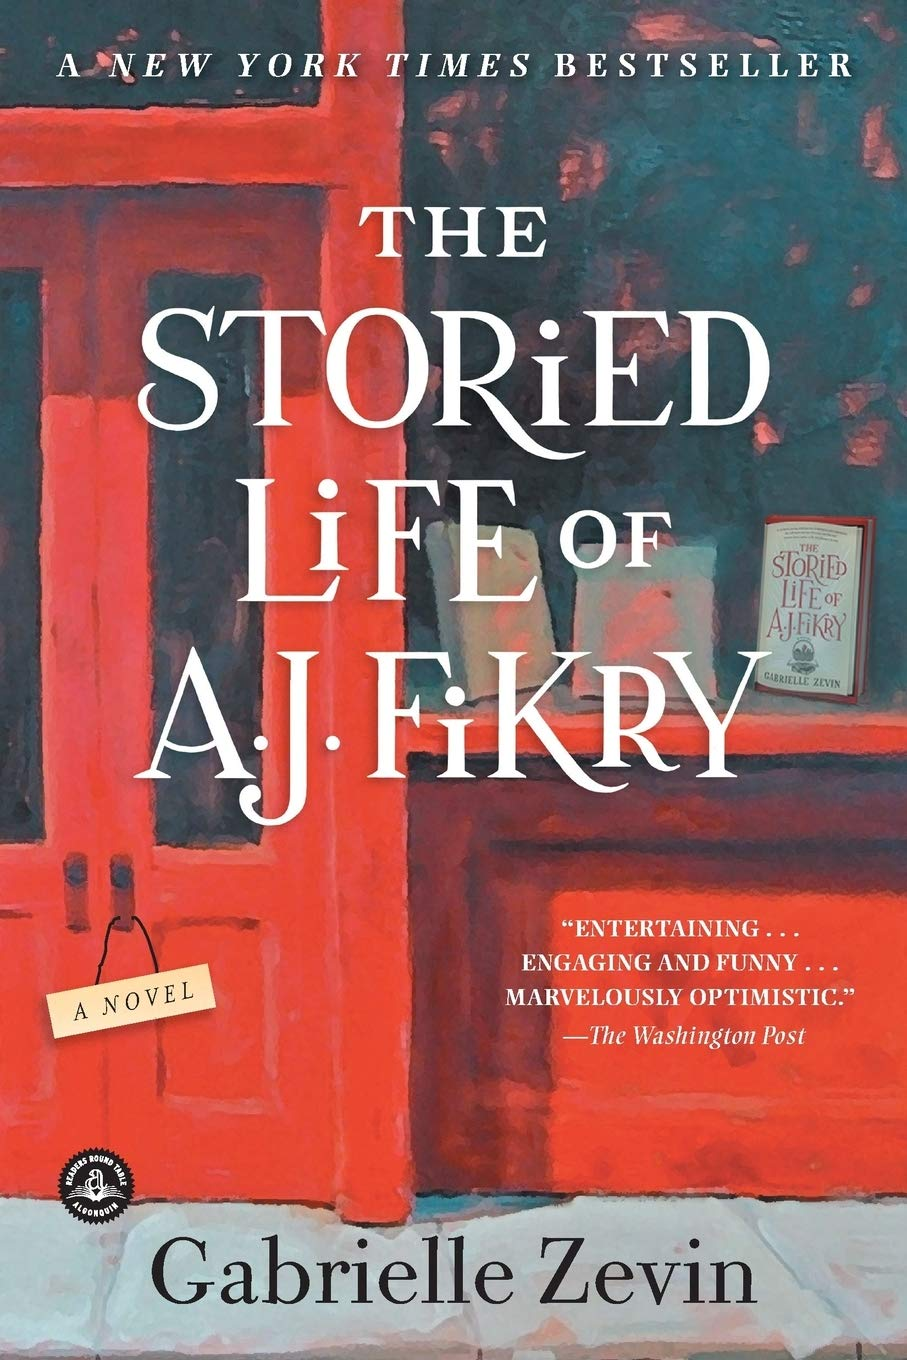 Image result for the storied life of aj fikry